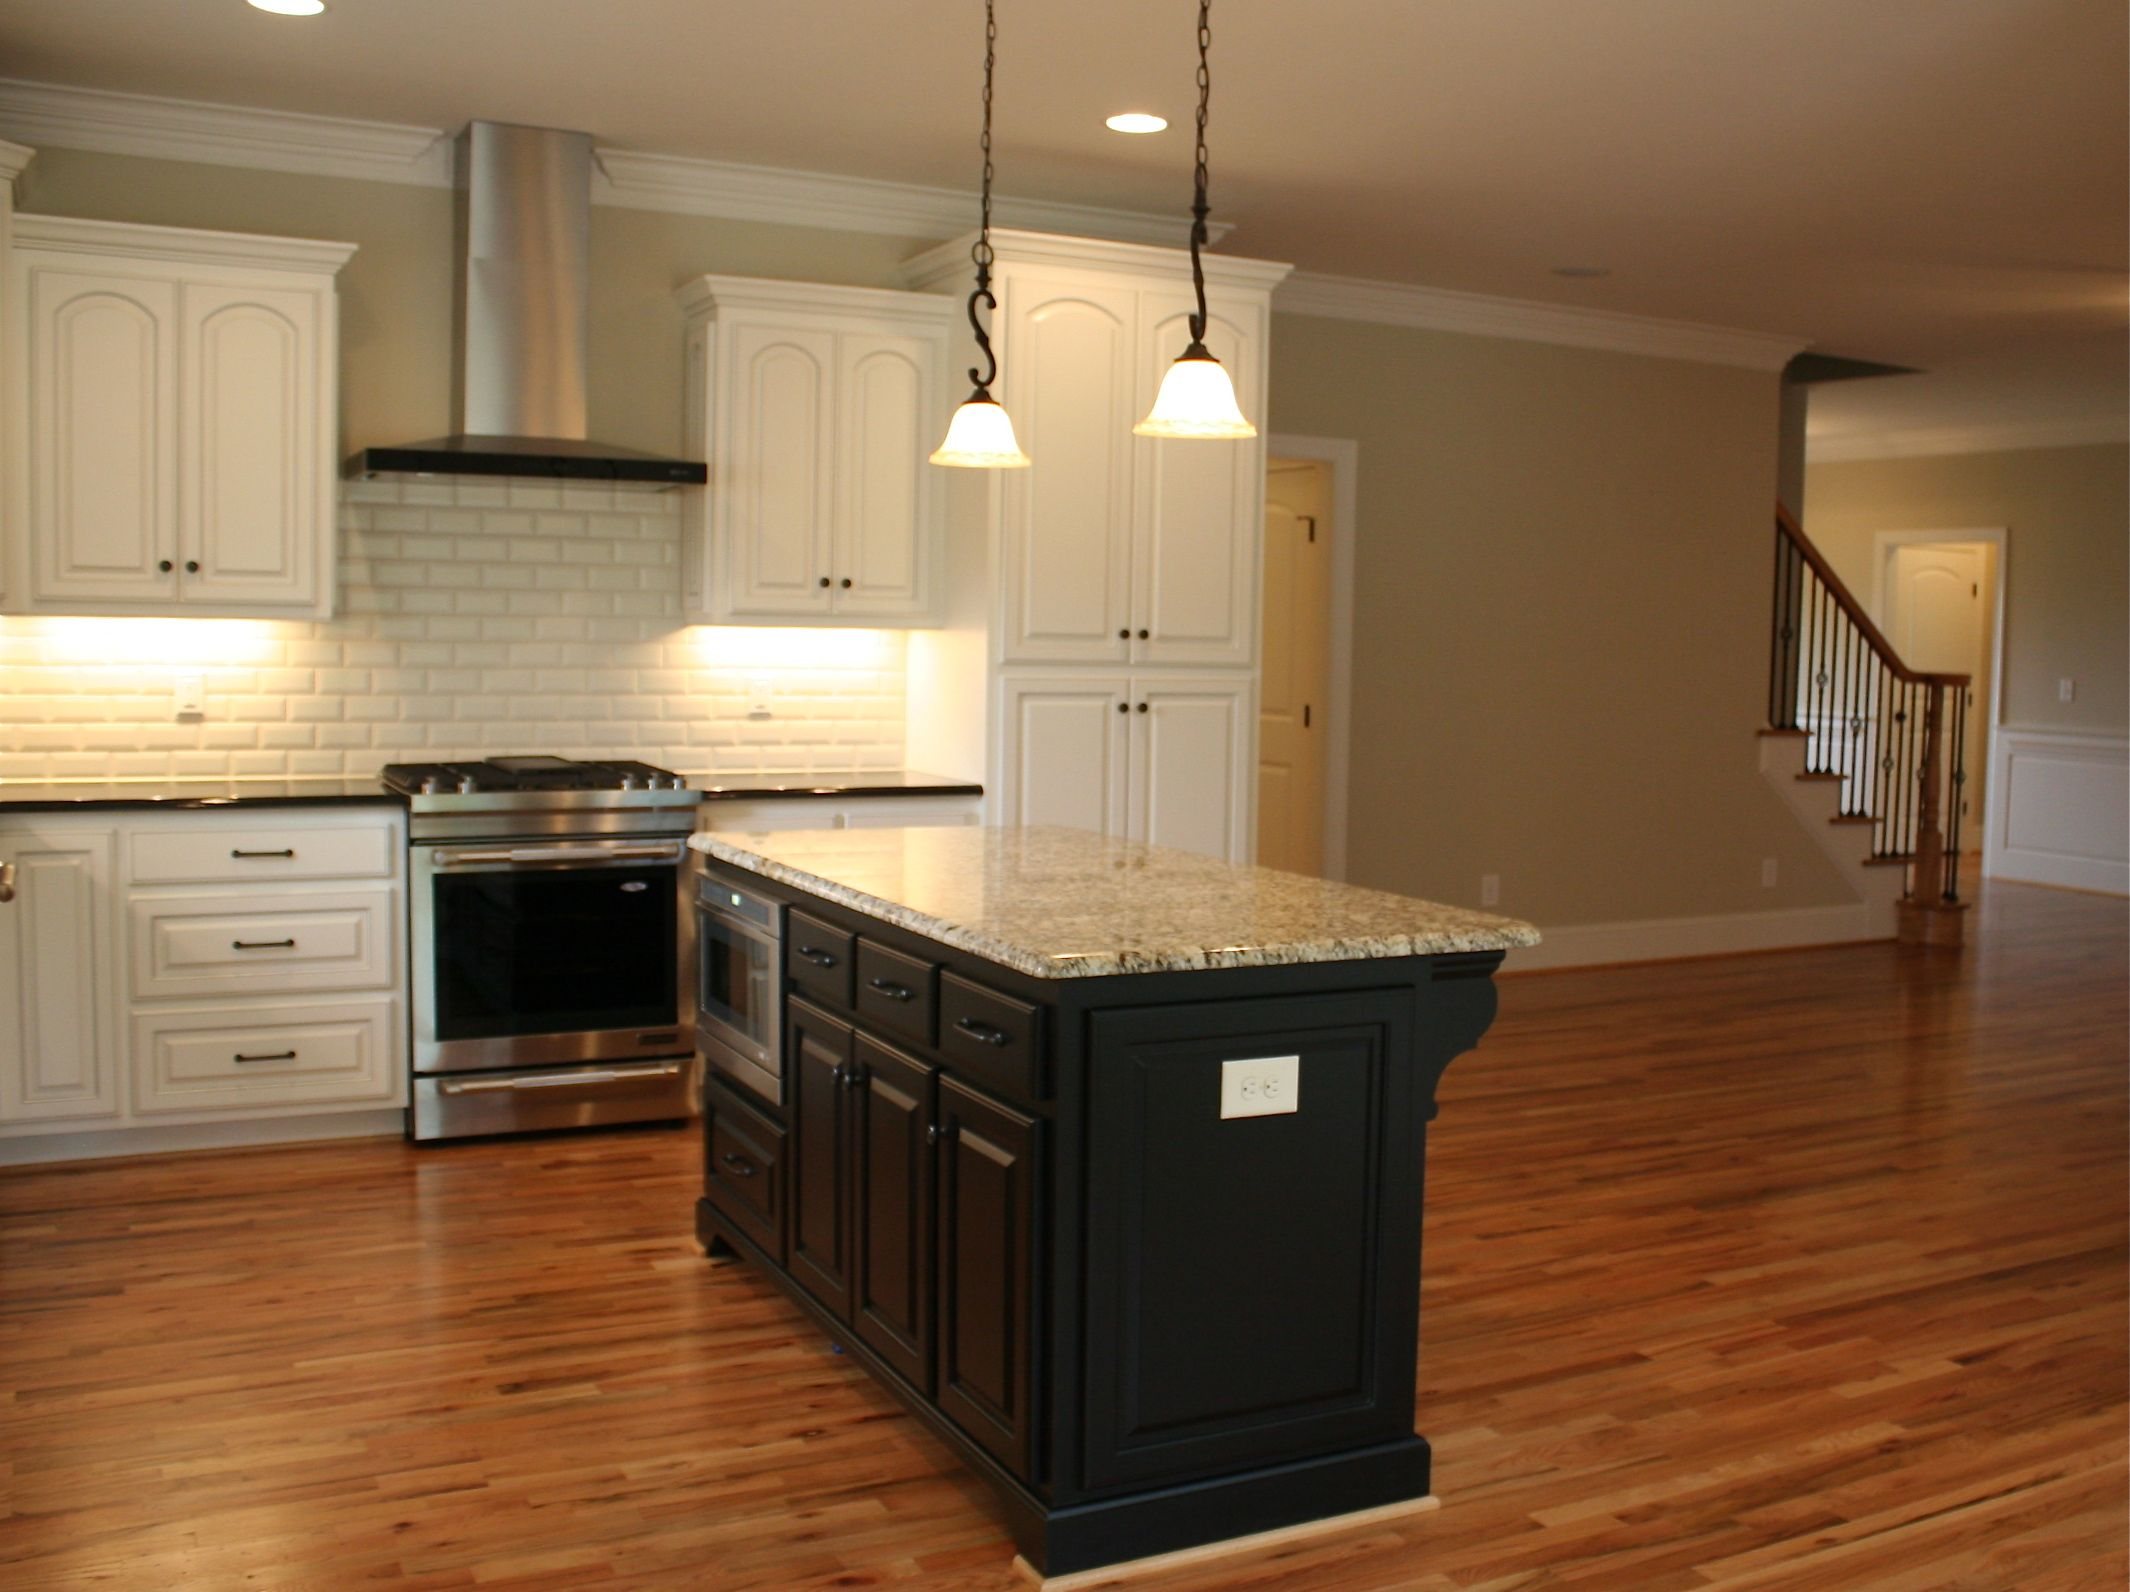 Kitchen featured in The Tranquility Creek By Four Seasons Contractors in Rocky Mount, NC